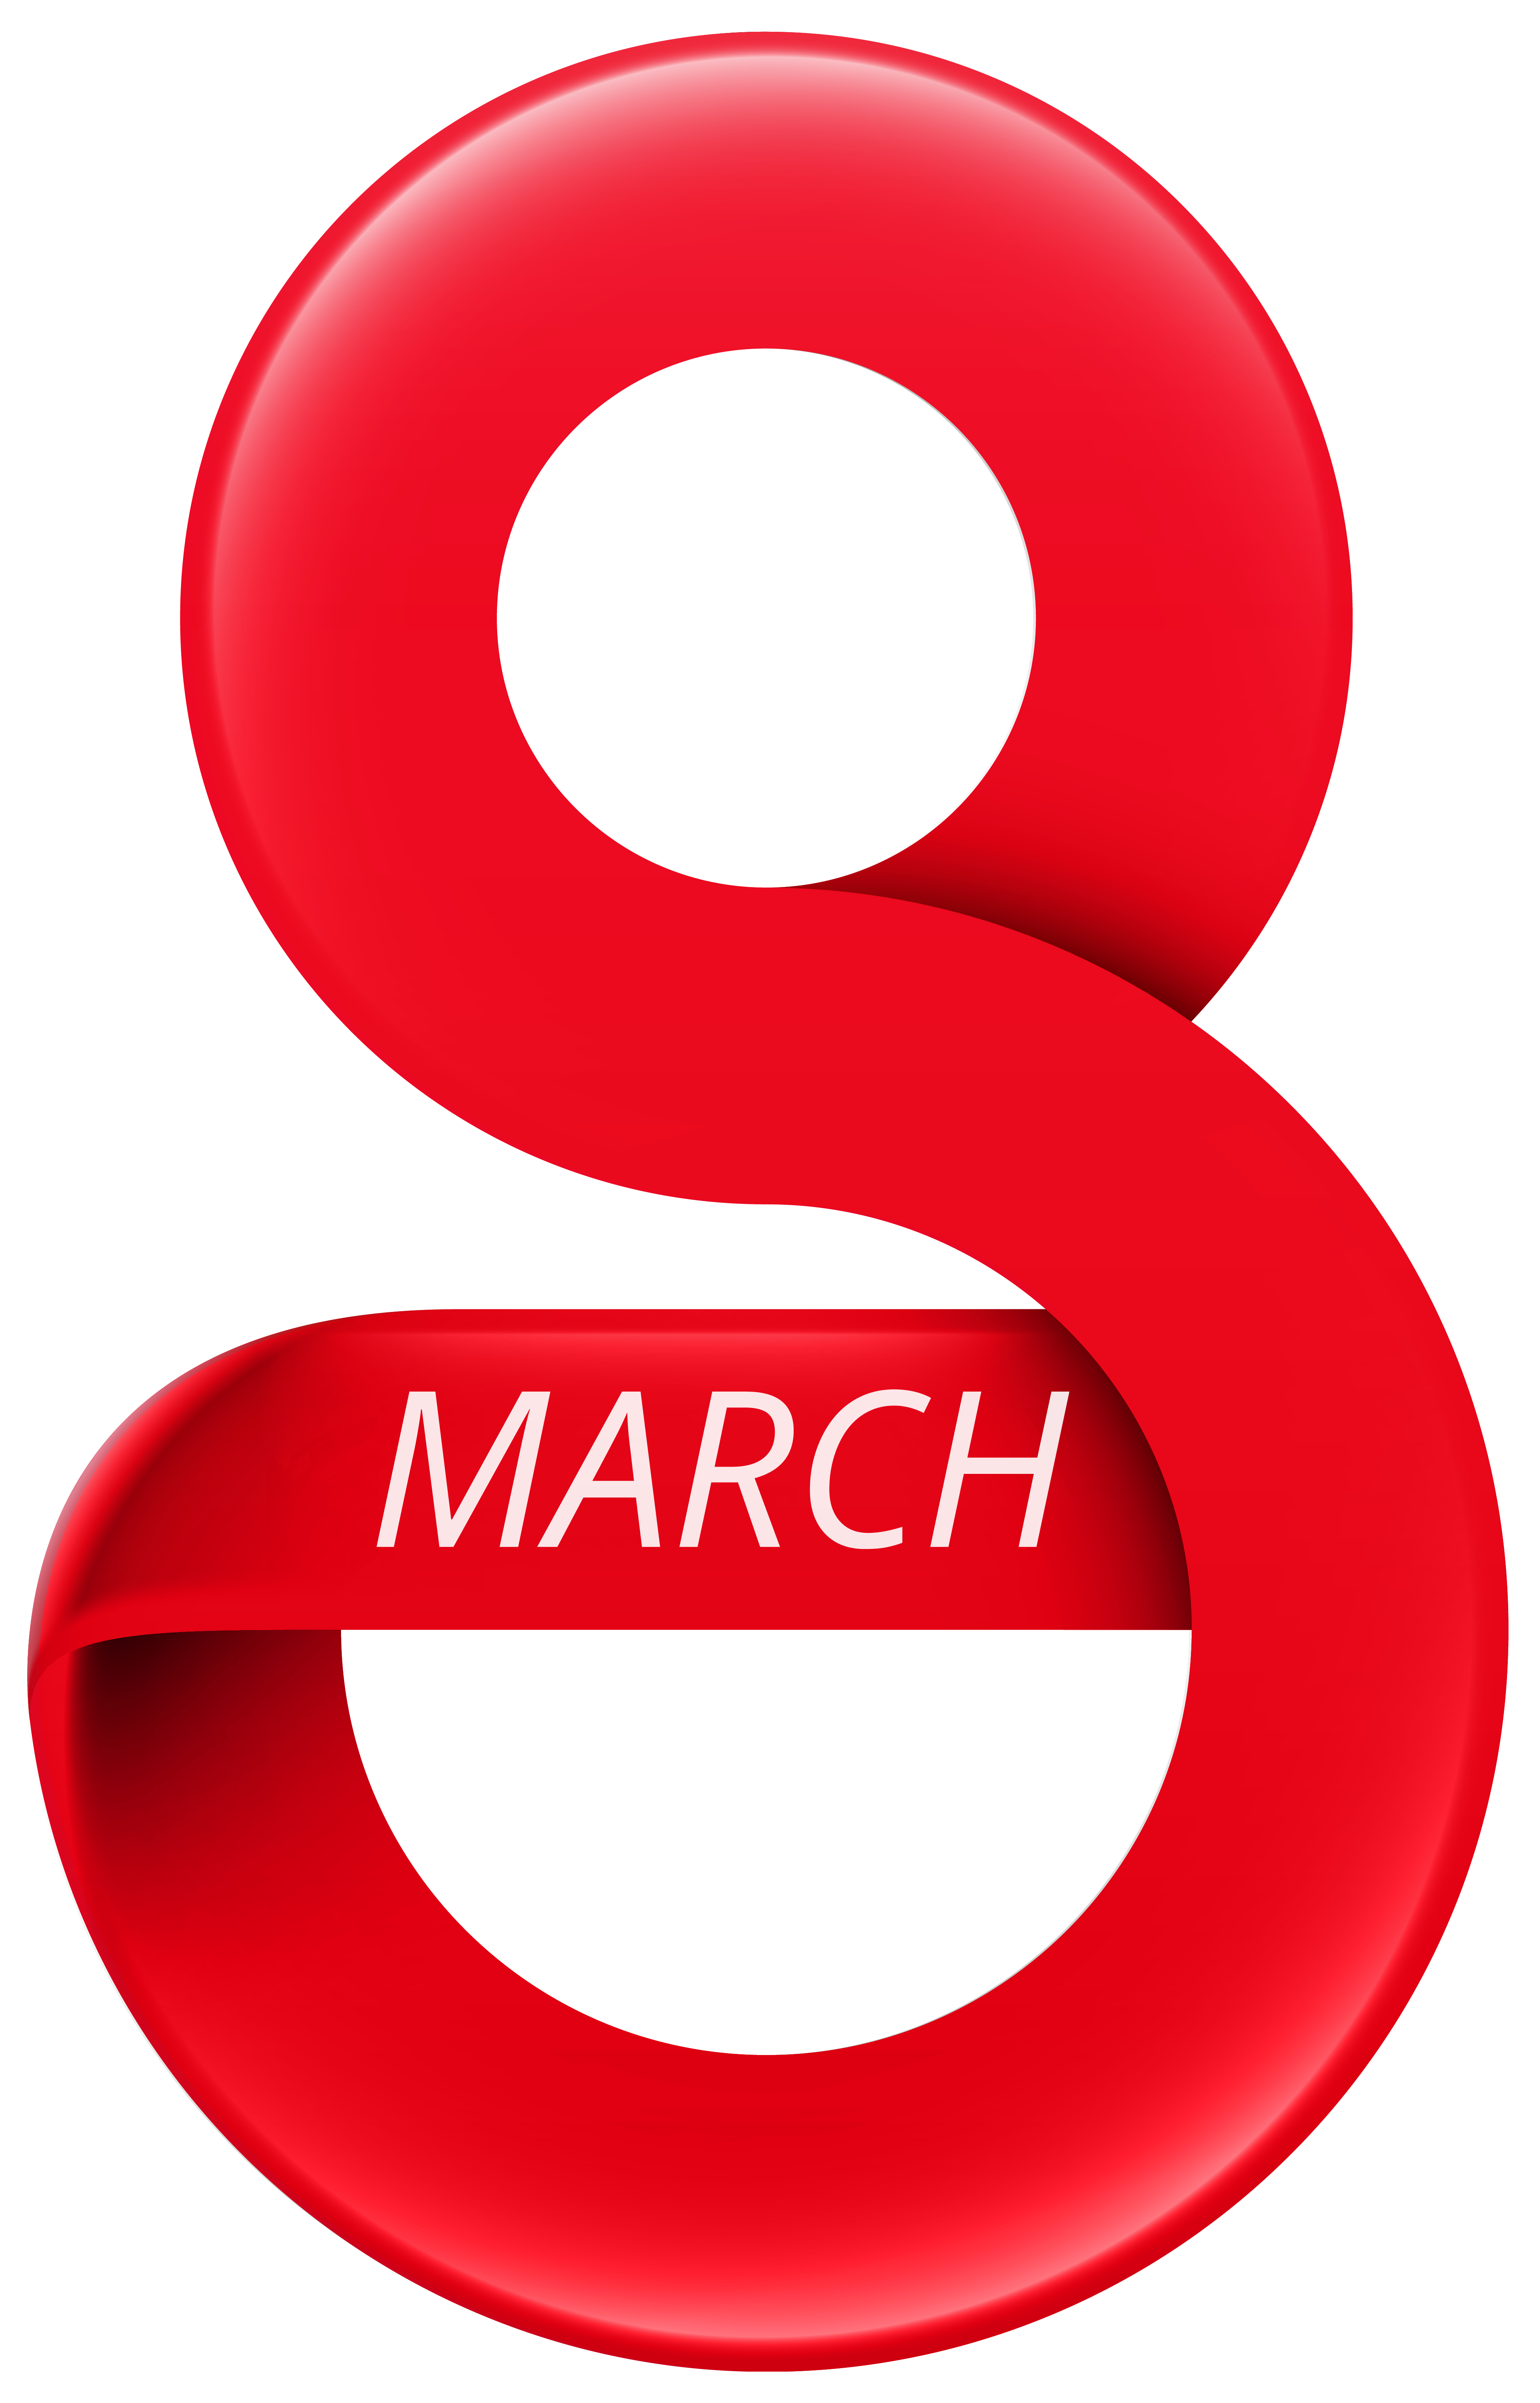 Clipart birthday march. Red png image gallery